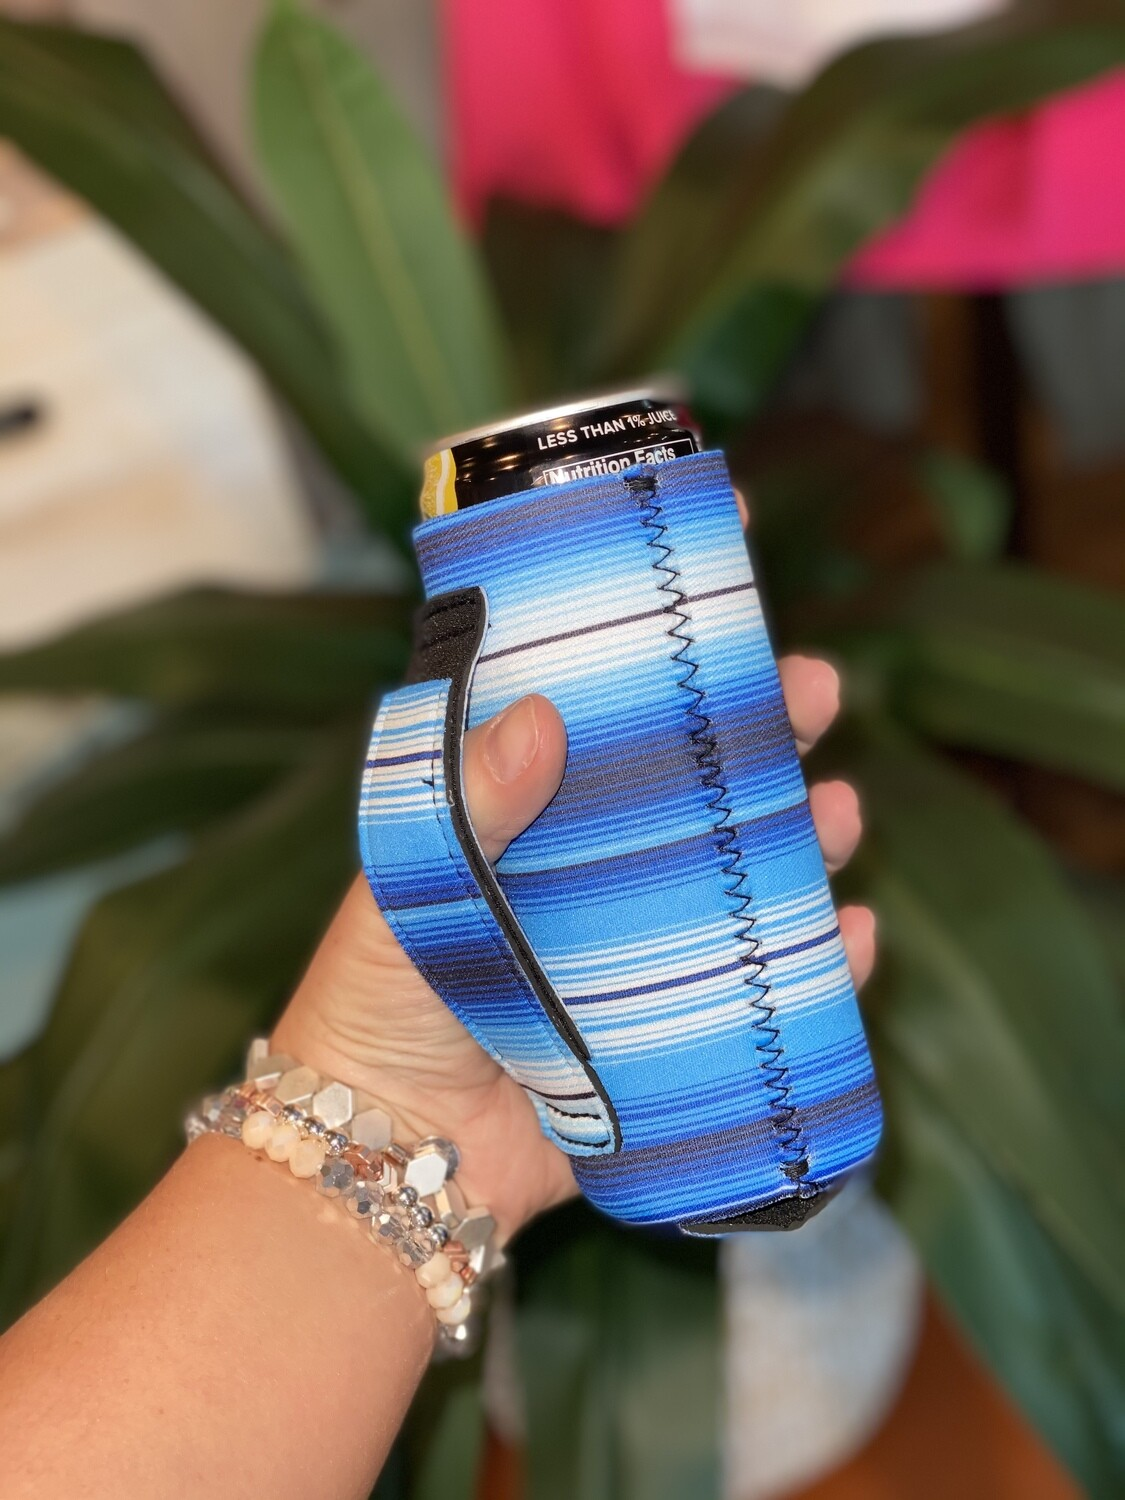 Blue Serape 12oz Slim Can Handler